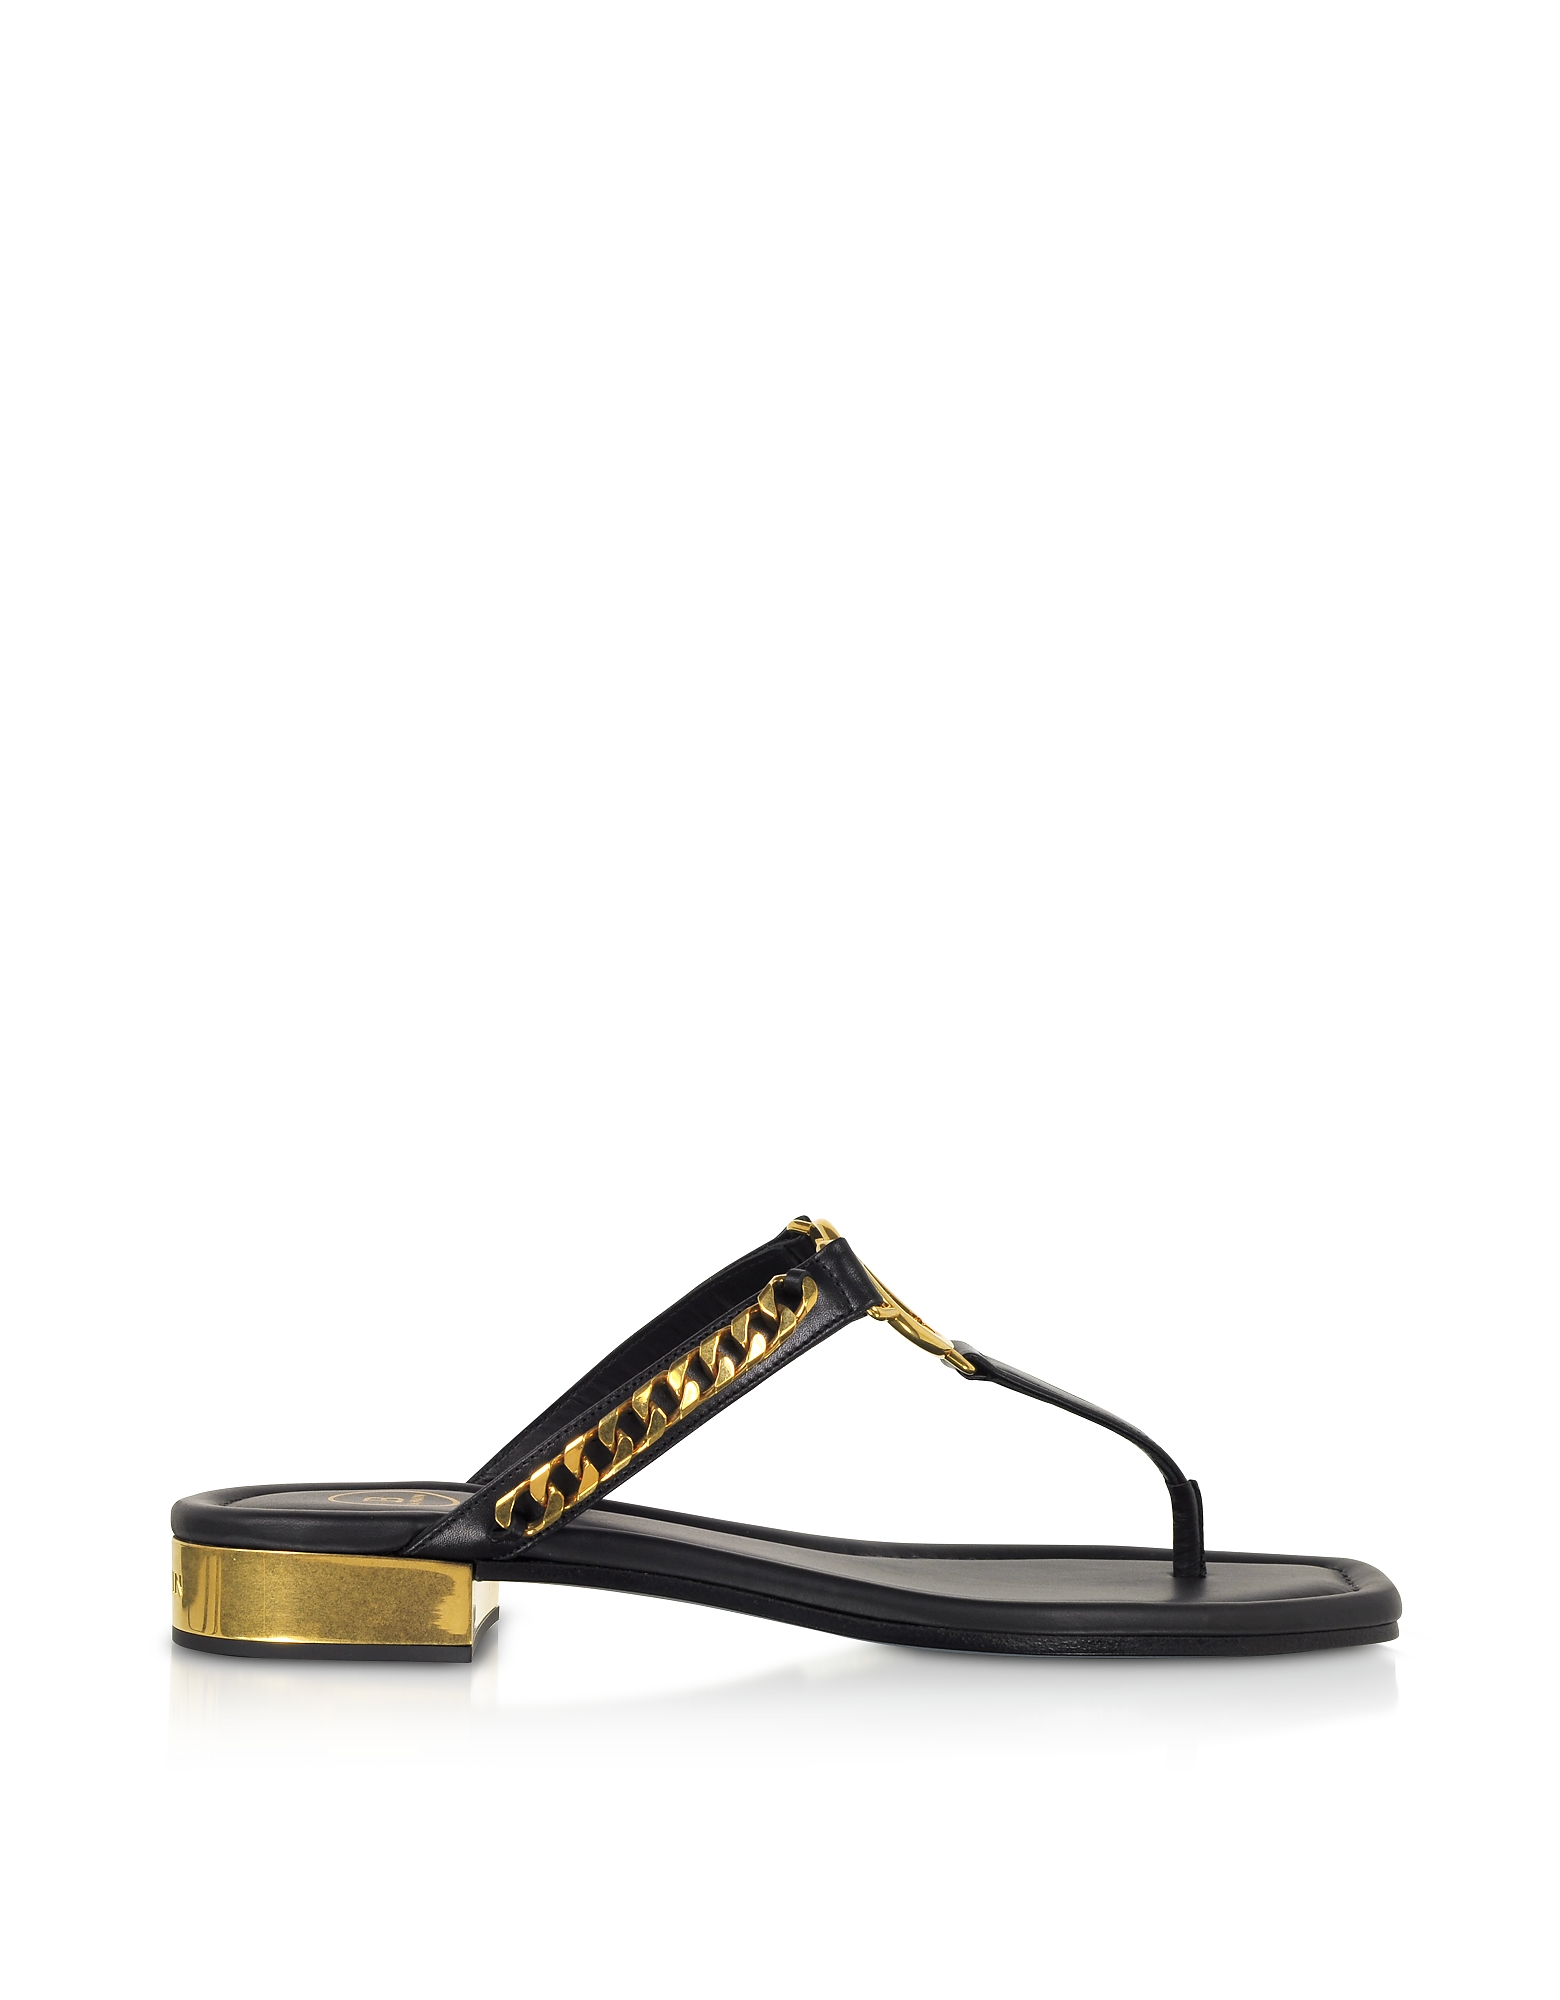 Balmain Designer Shoes, Black Leather T-Bar Flat Sandals